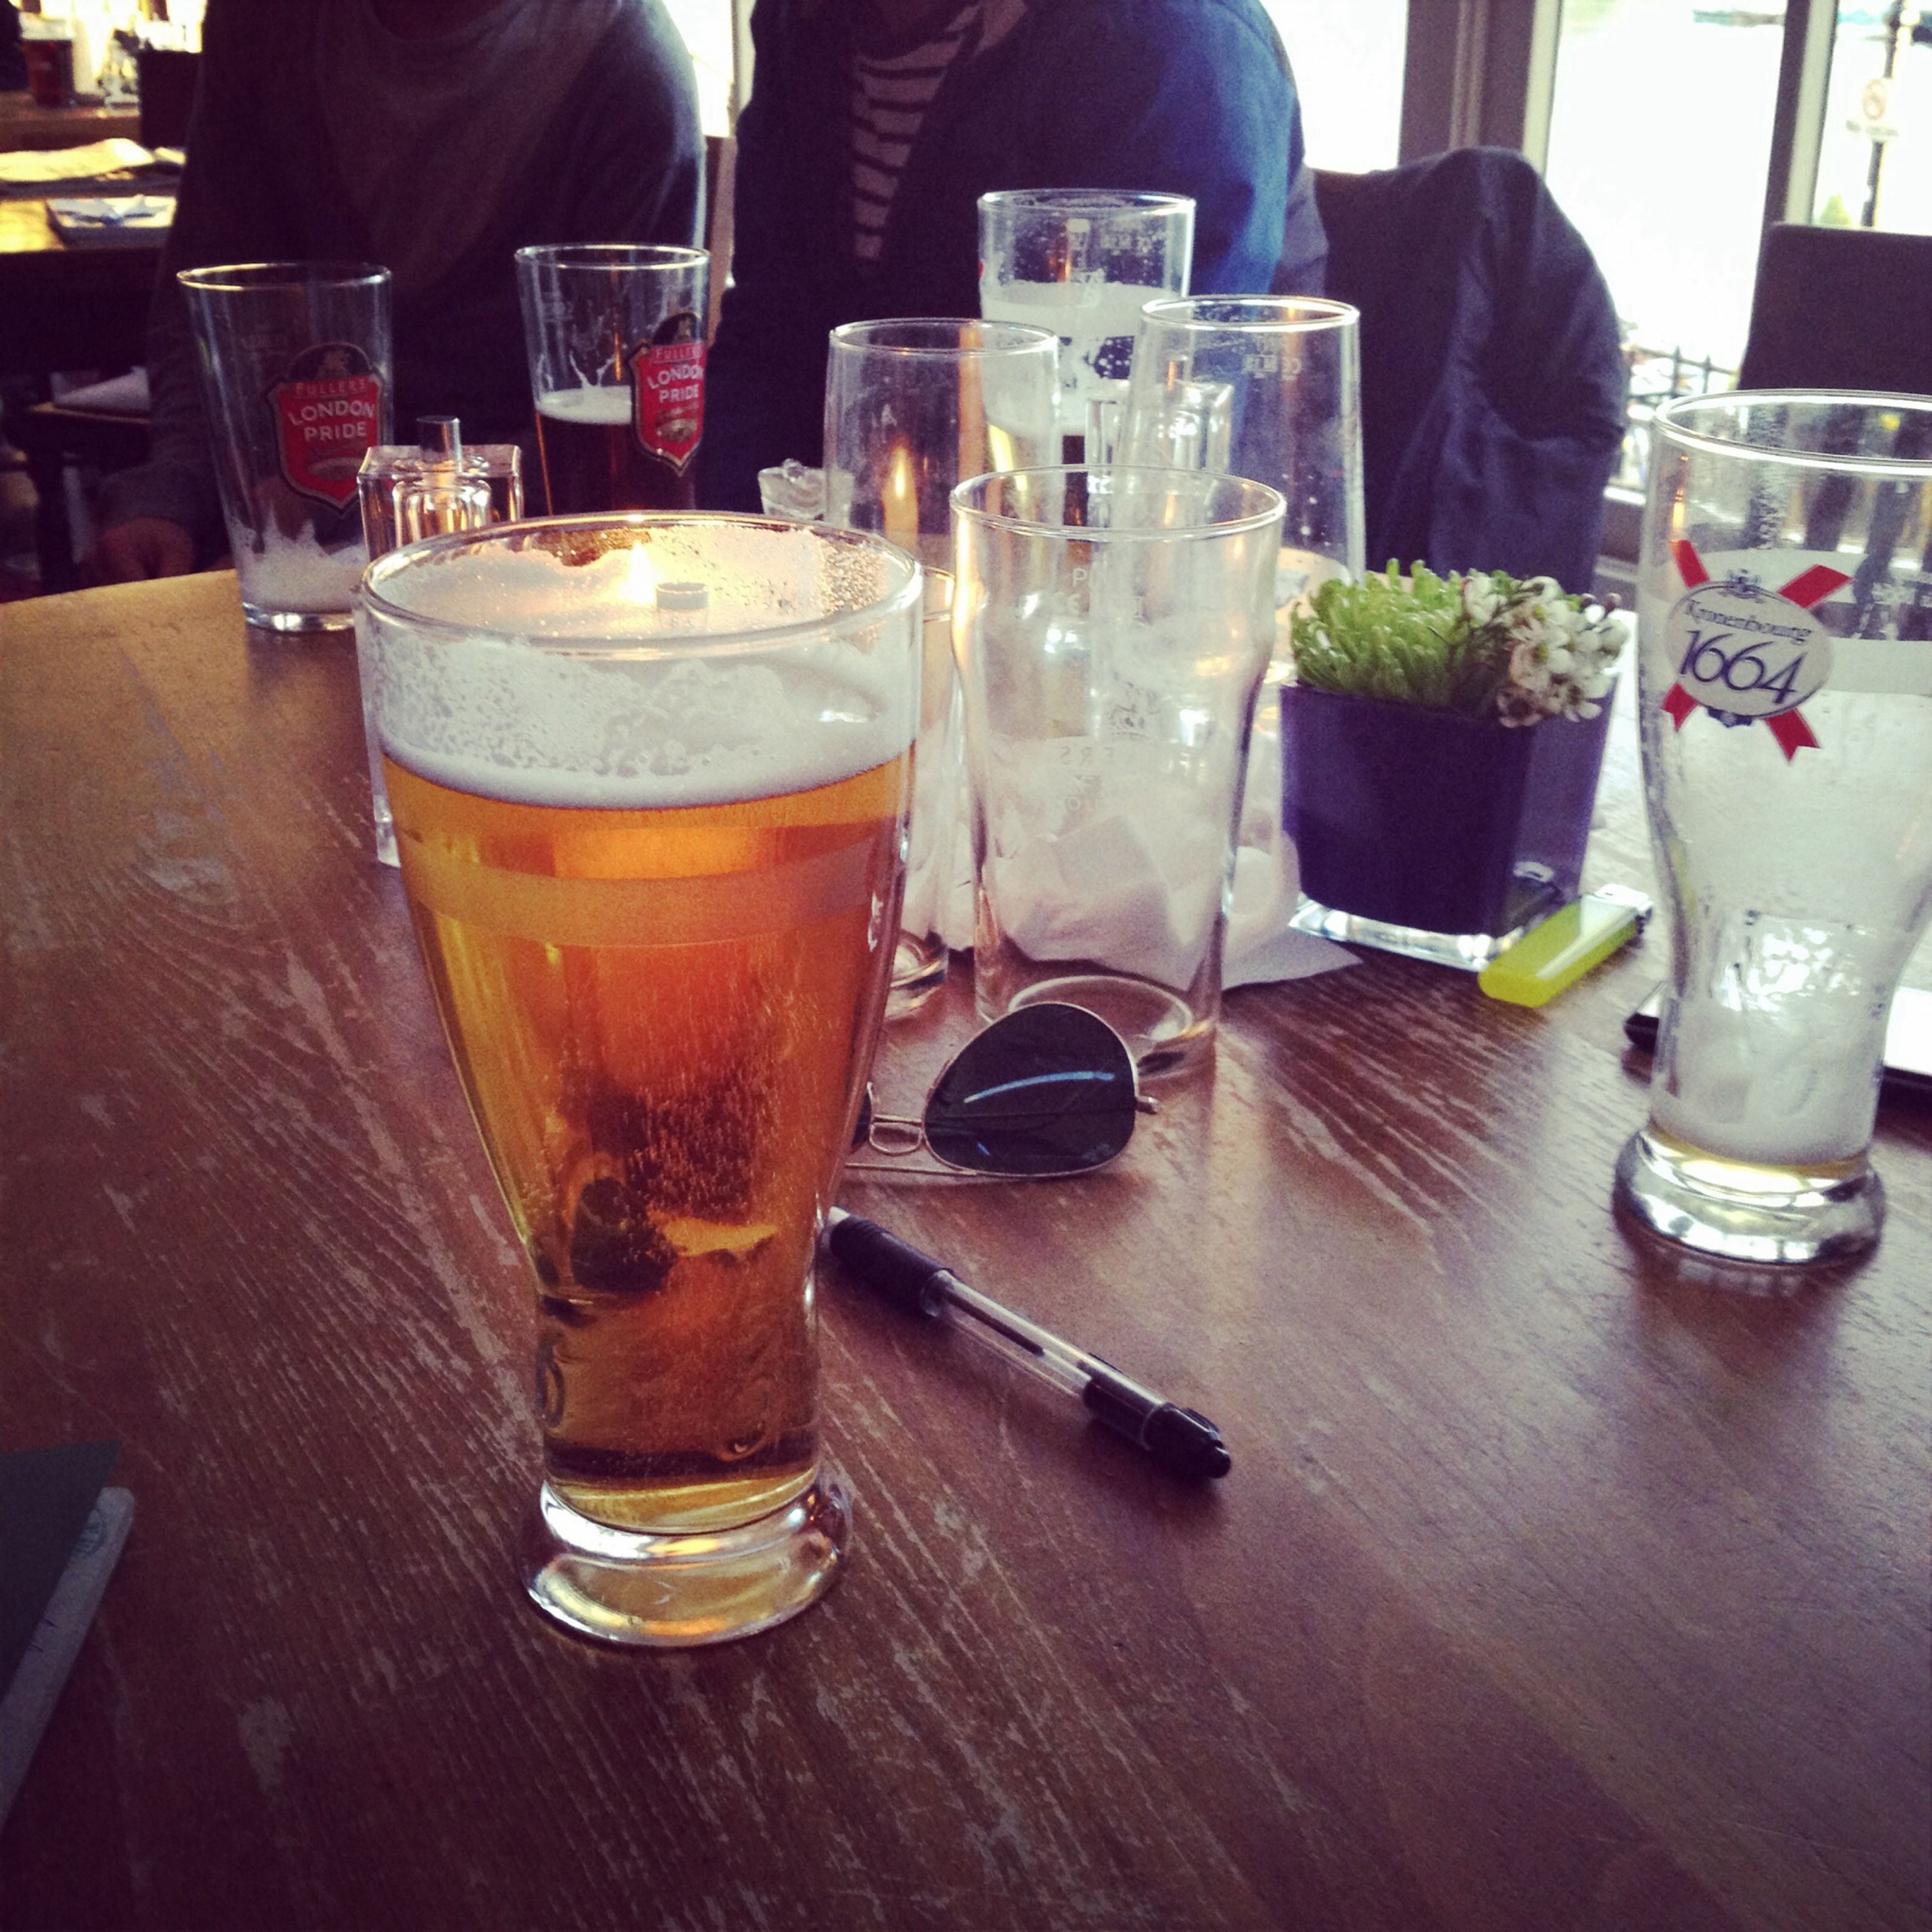 food and drink, drink, table, refreshment, drinking glass, indoors, freshness, still life, alcohol, restaurant, glass - material, close-up, glass, bottle, beer glass, healthy eating, food, juice, no people, transparent